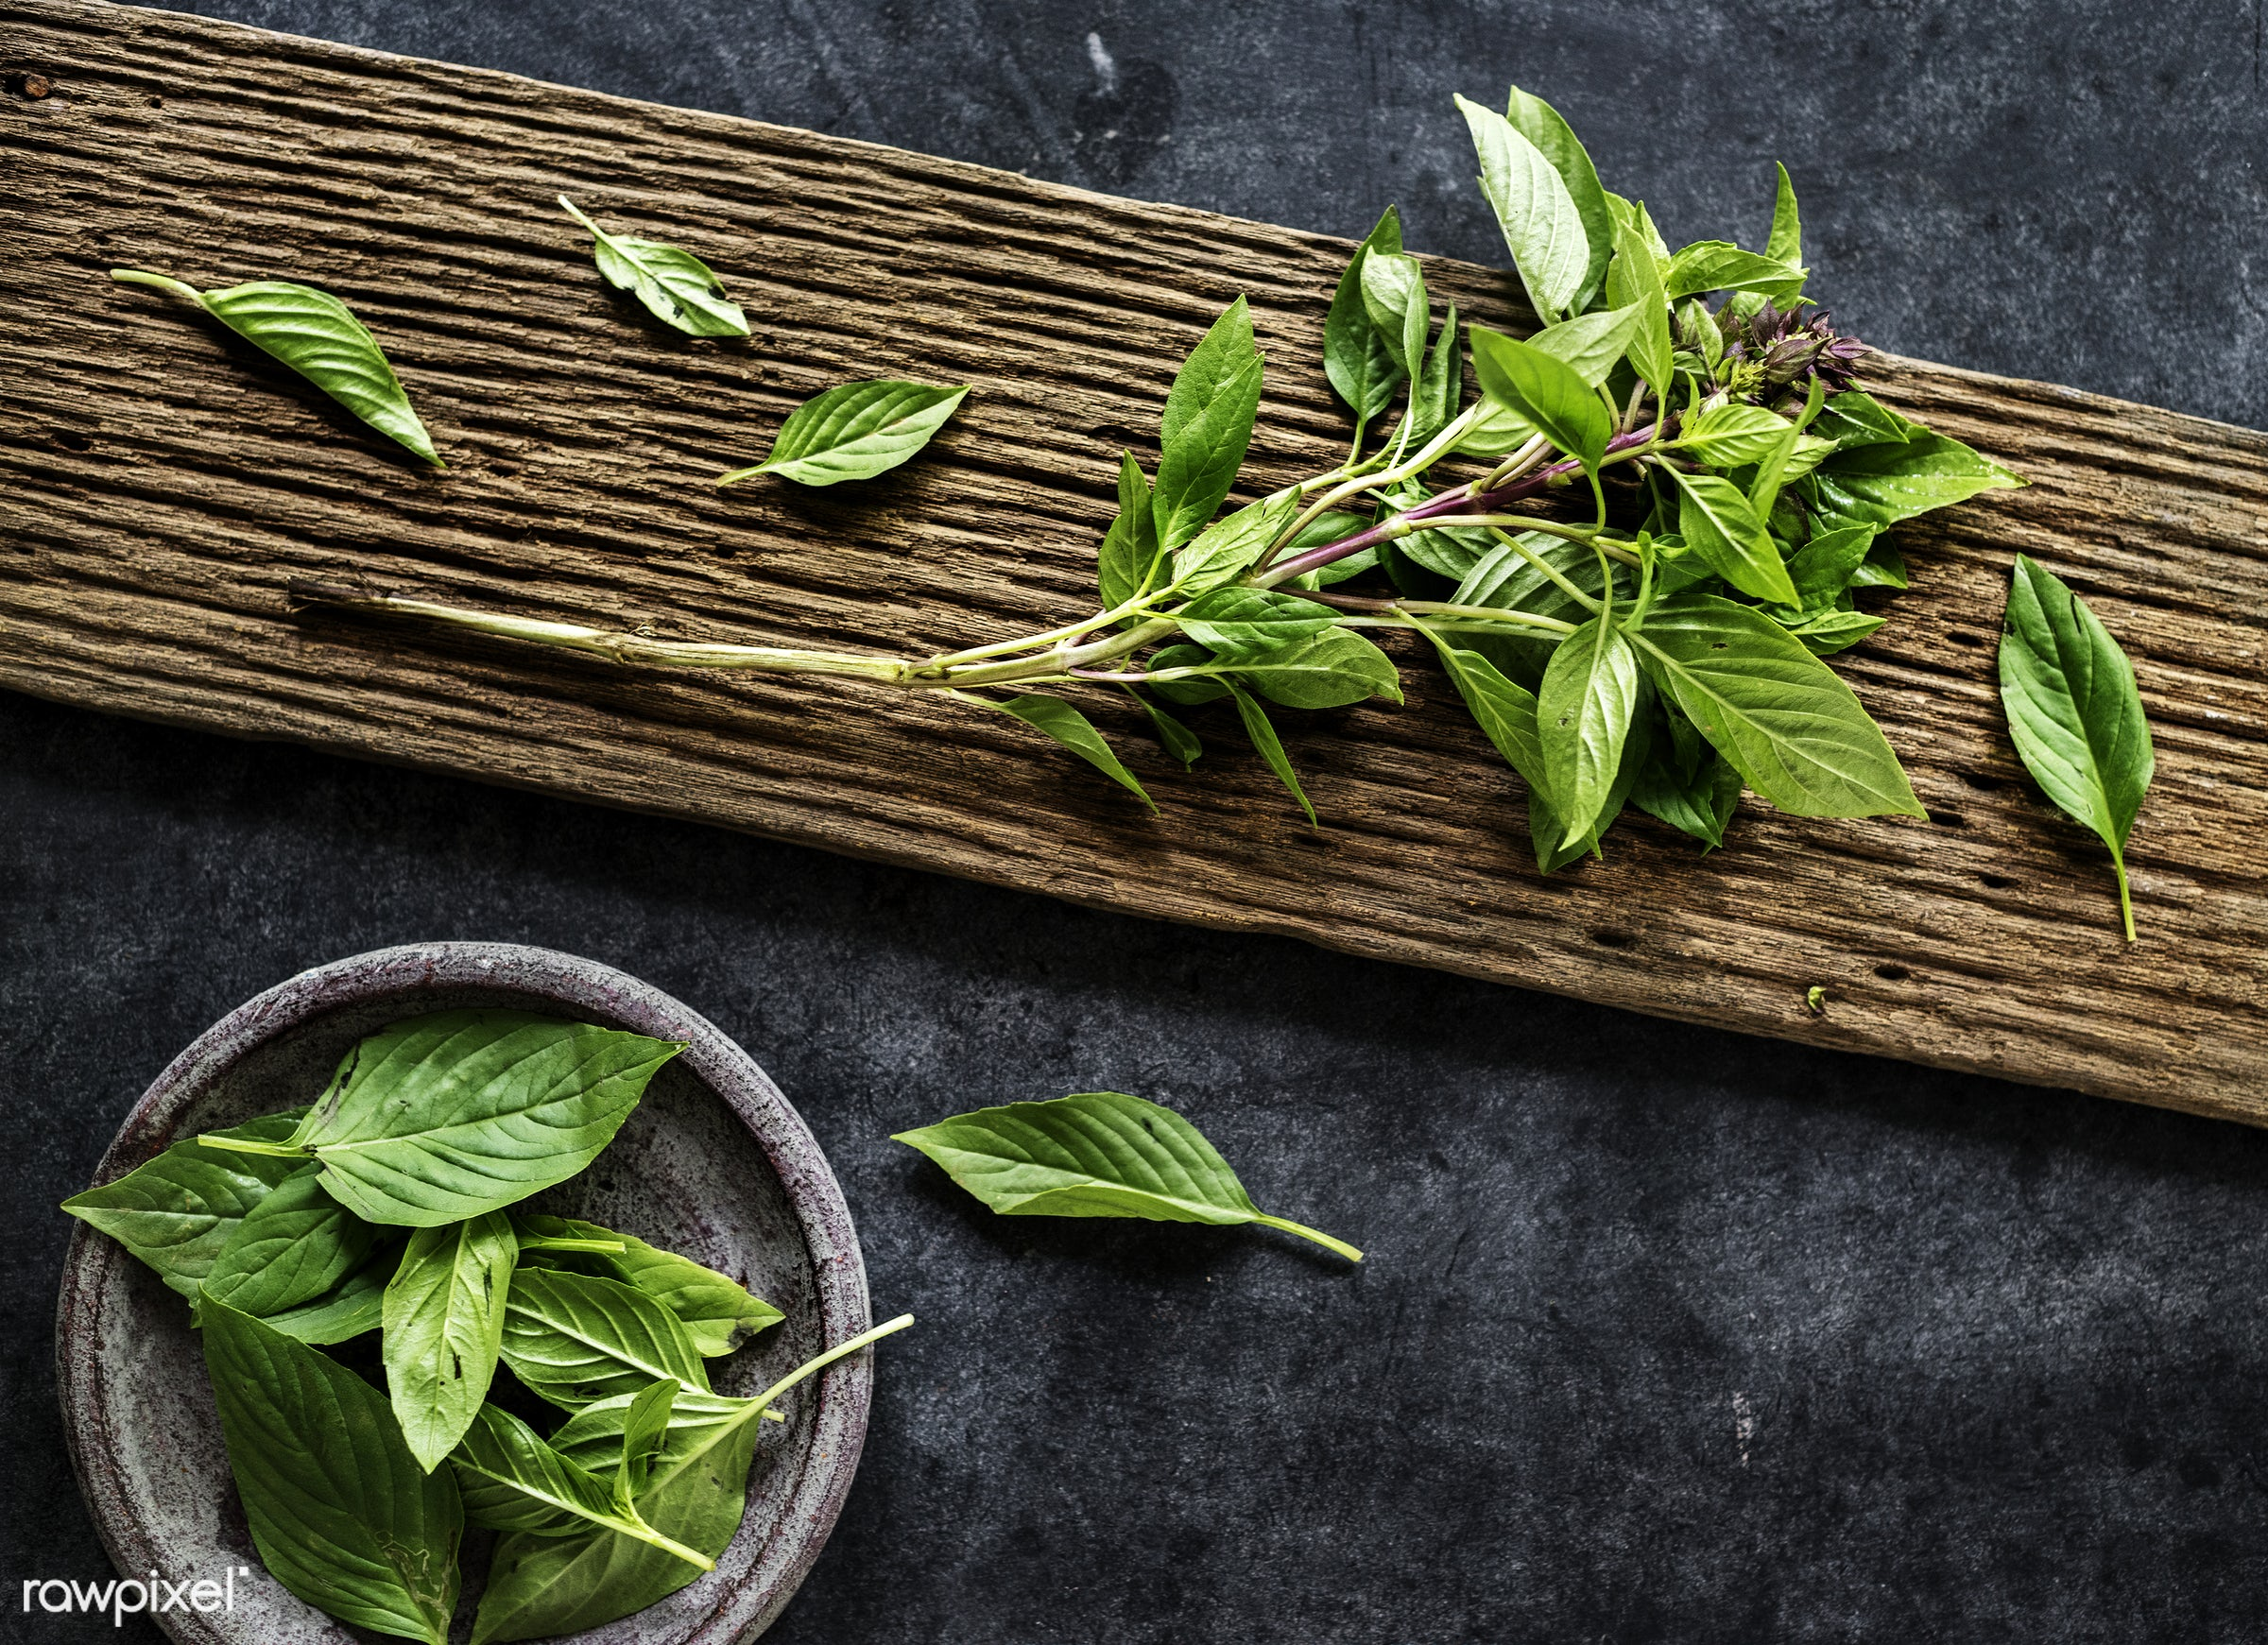 nobody, herbs, leaves, spices, basil, asian, ingredients, black background, real, asian cuisine, organic, nature, fresh,...